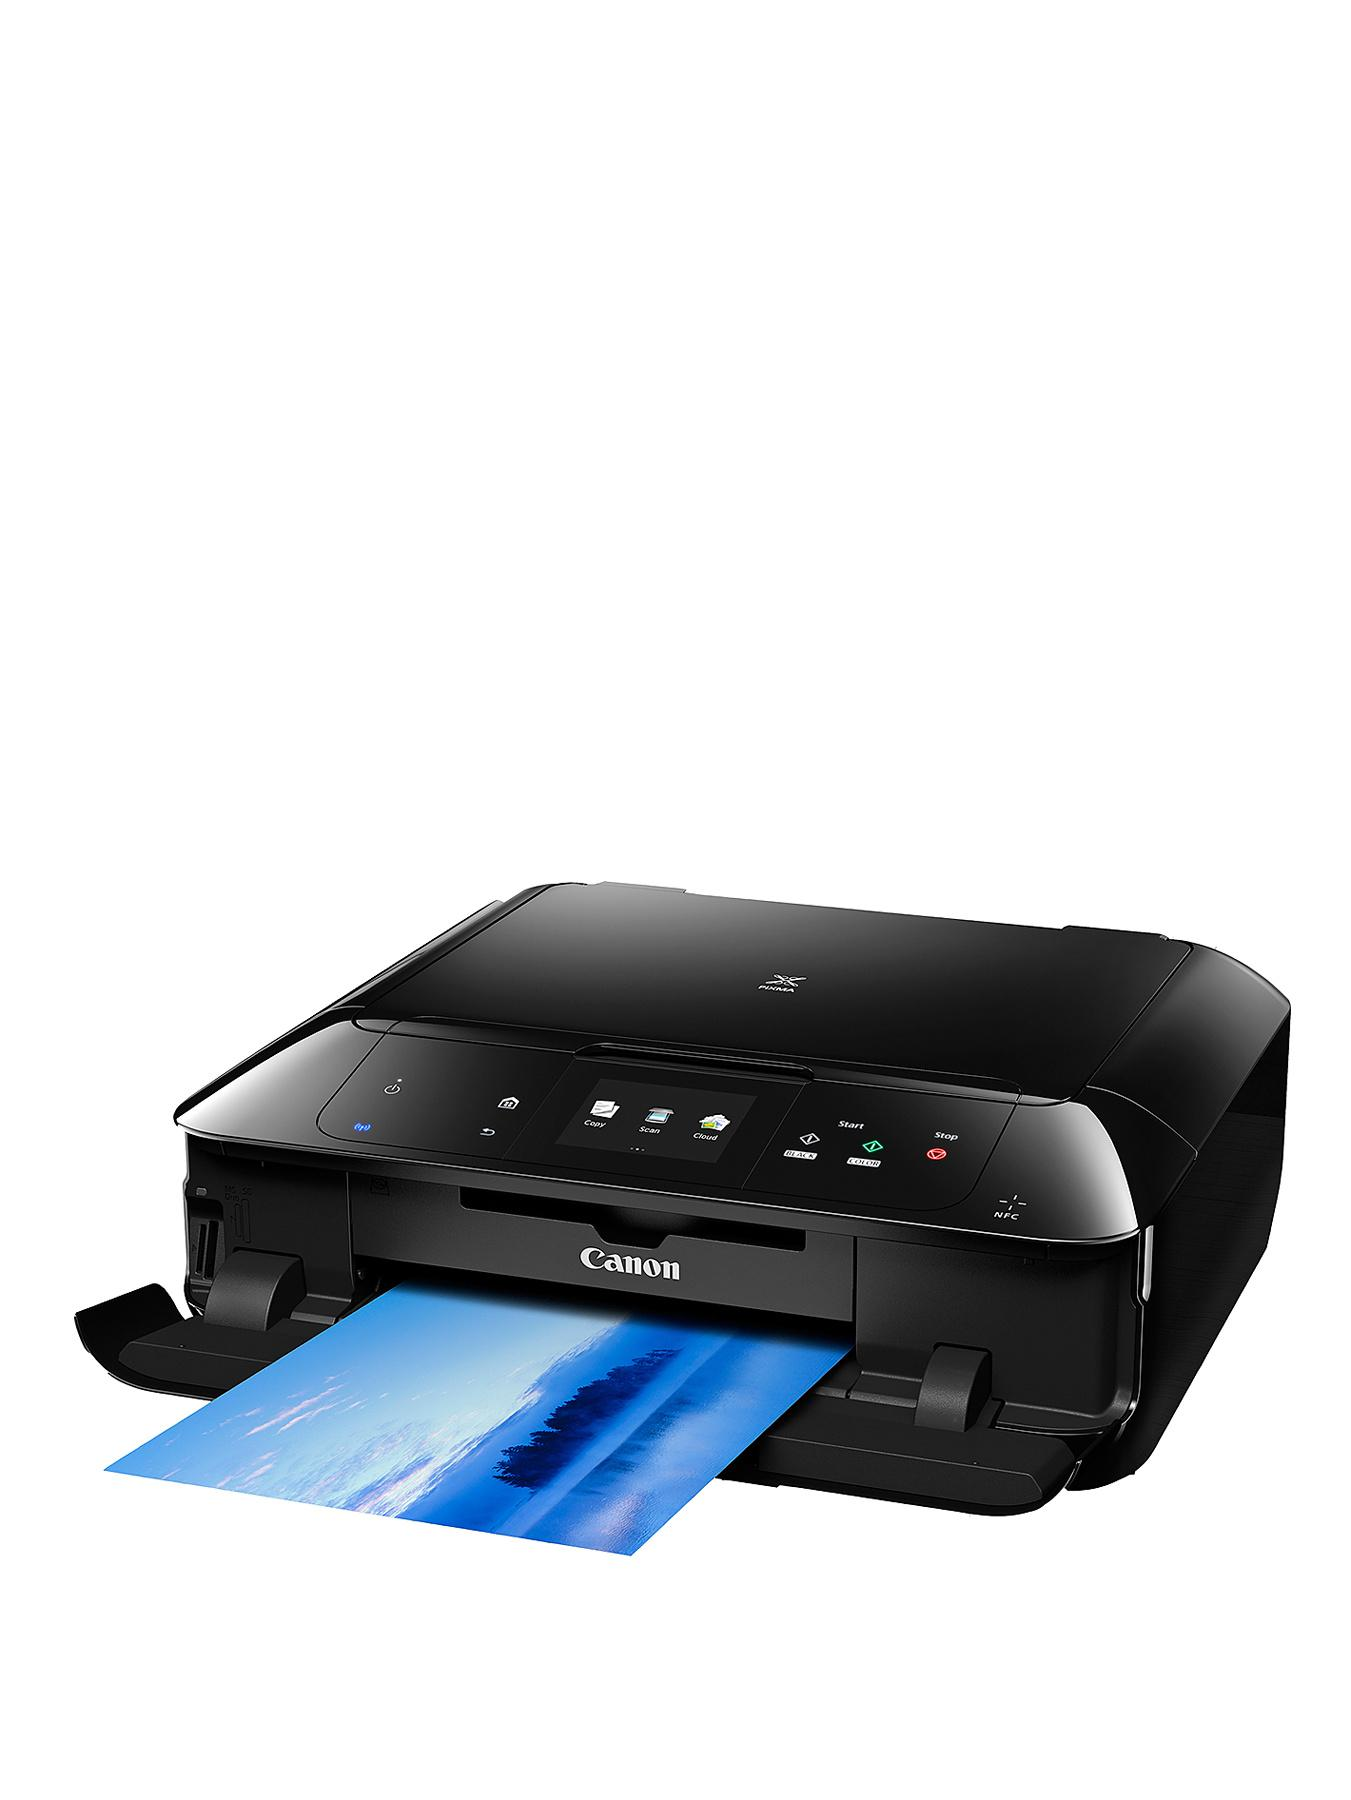 Canon Pixma MG7550 All in One Printer - Black